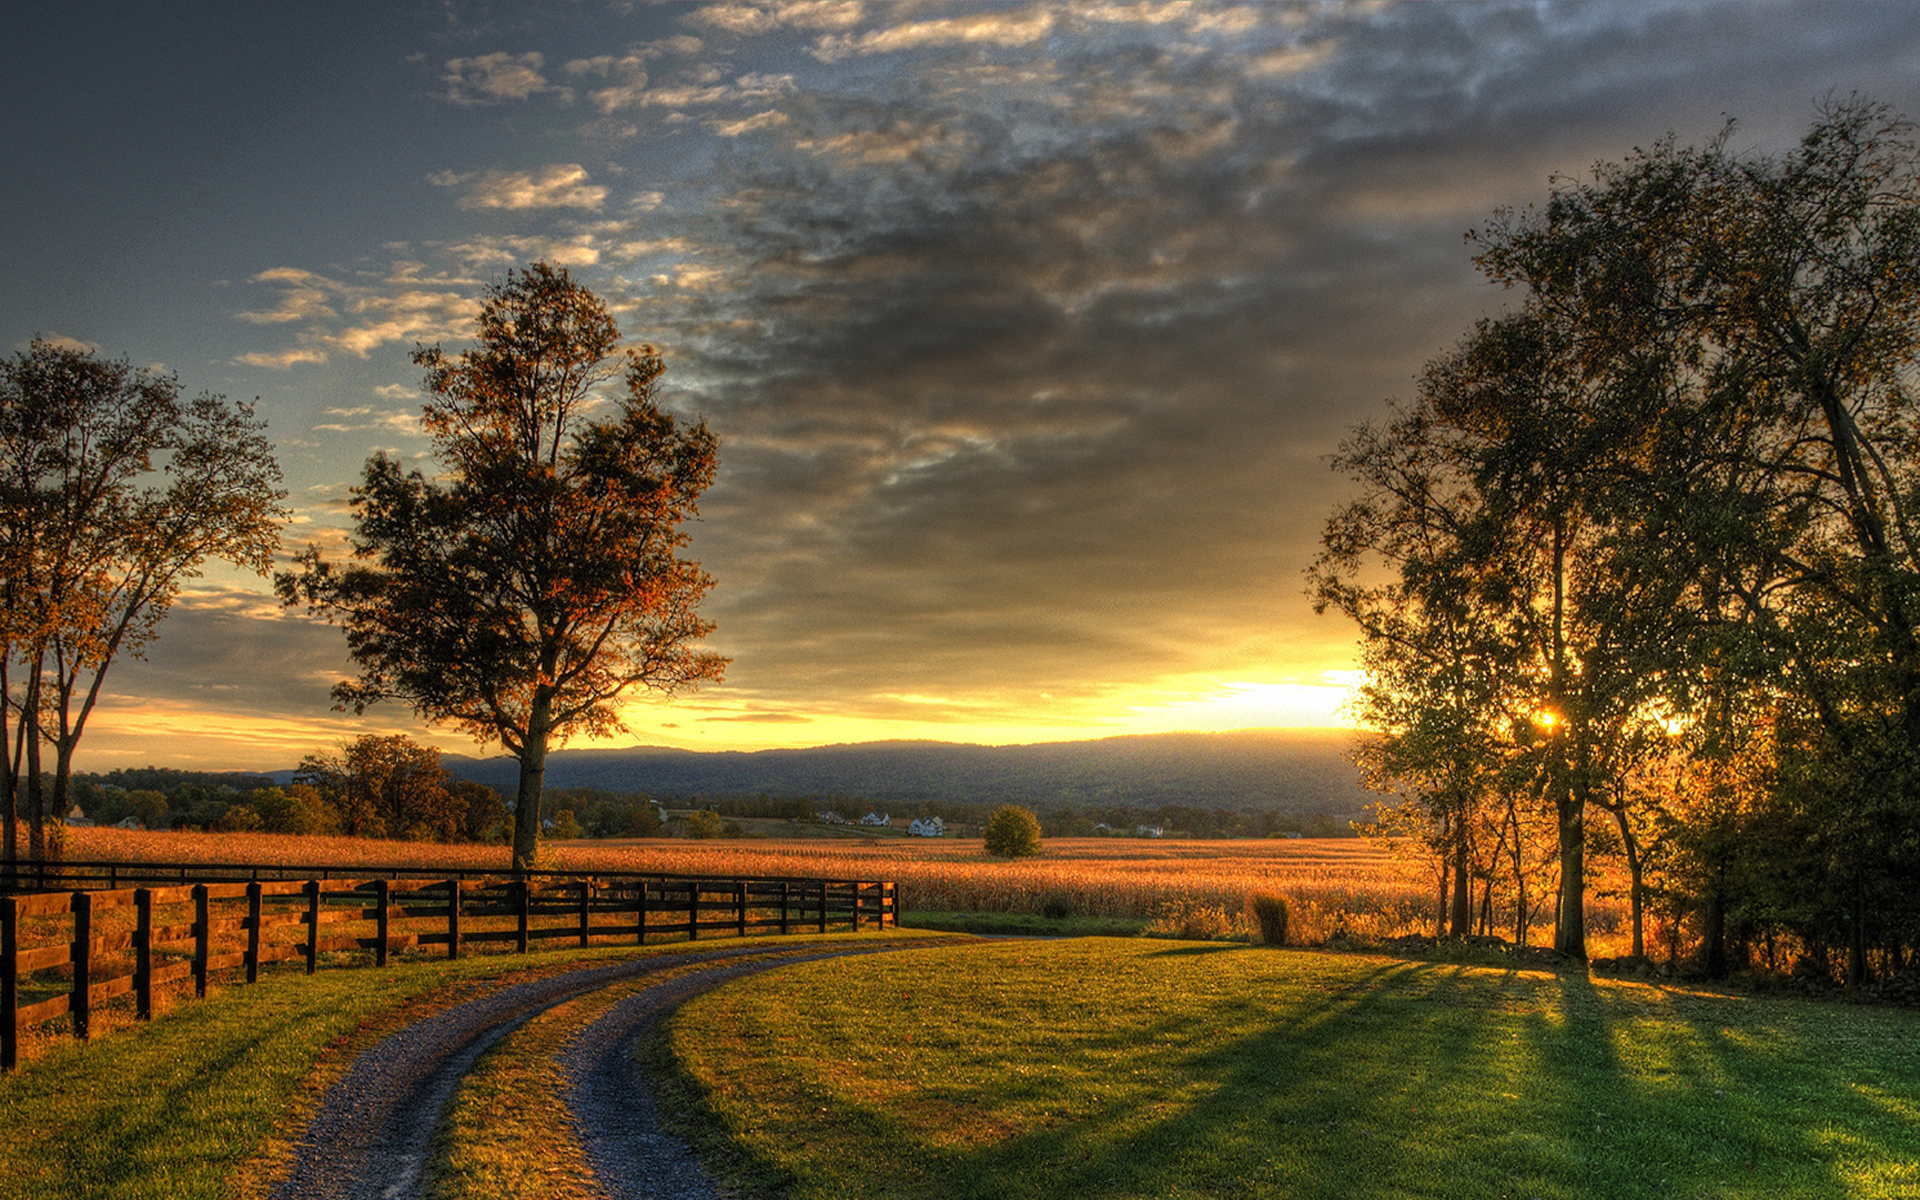 Beautiful country free wallpaper pictures wallpapersafari - Beautiful country iphone backgrounds ...